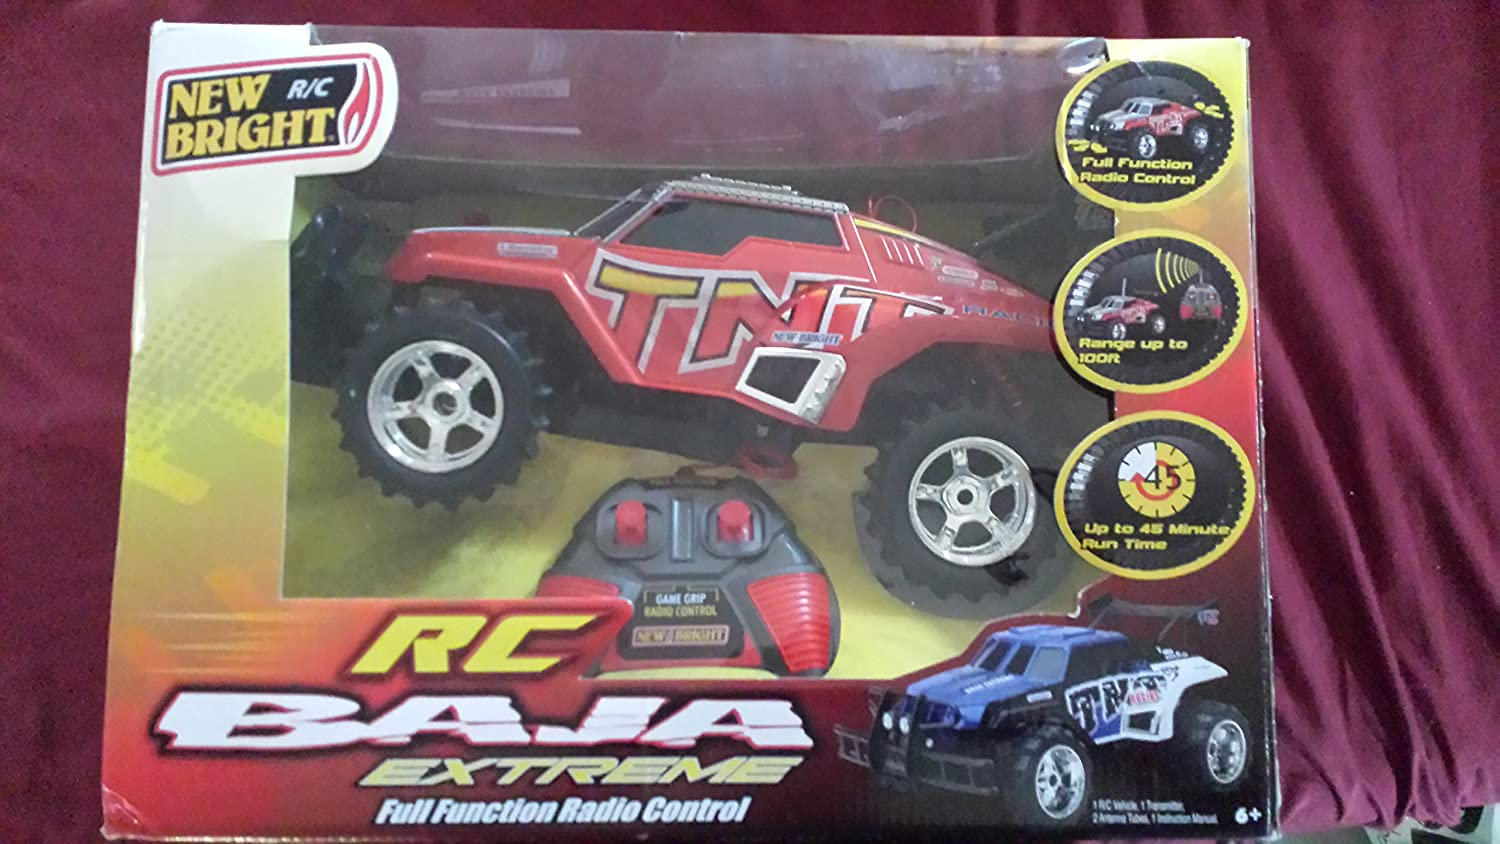 New Bright Pro Dirt Baja Extreme Tnt Rc Car Toys Games